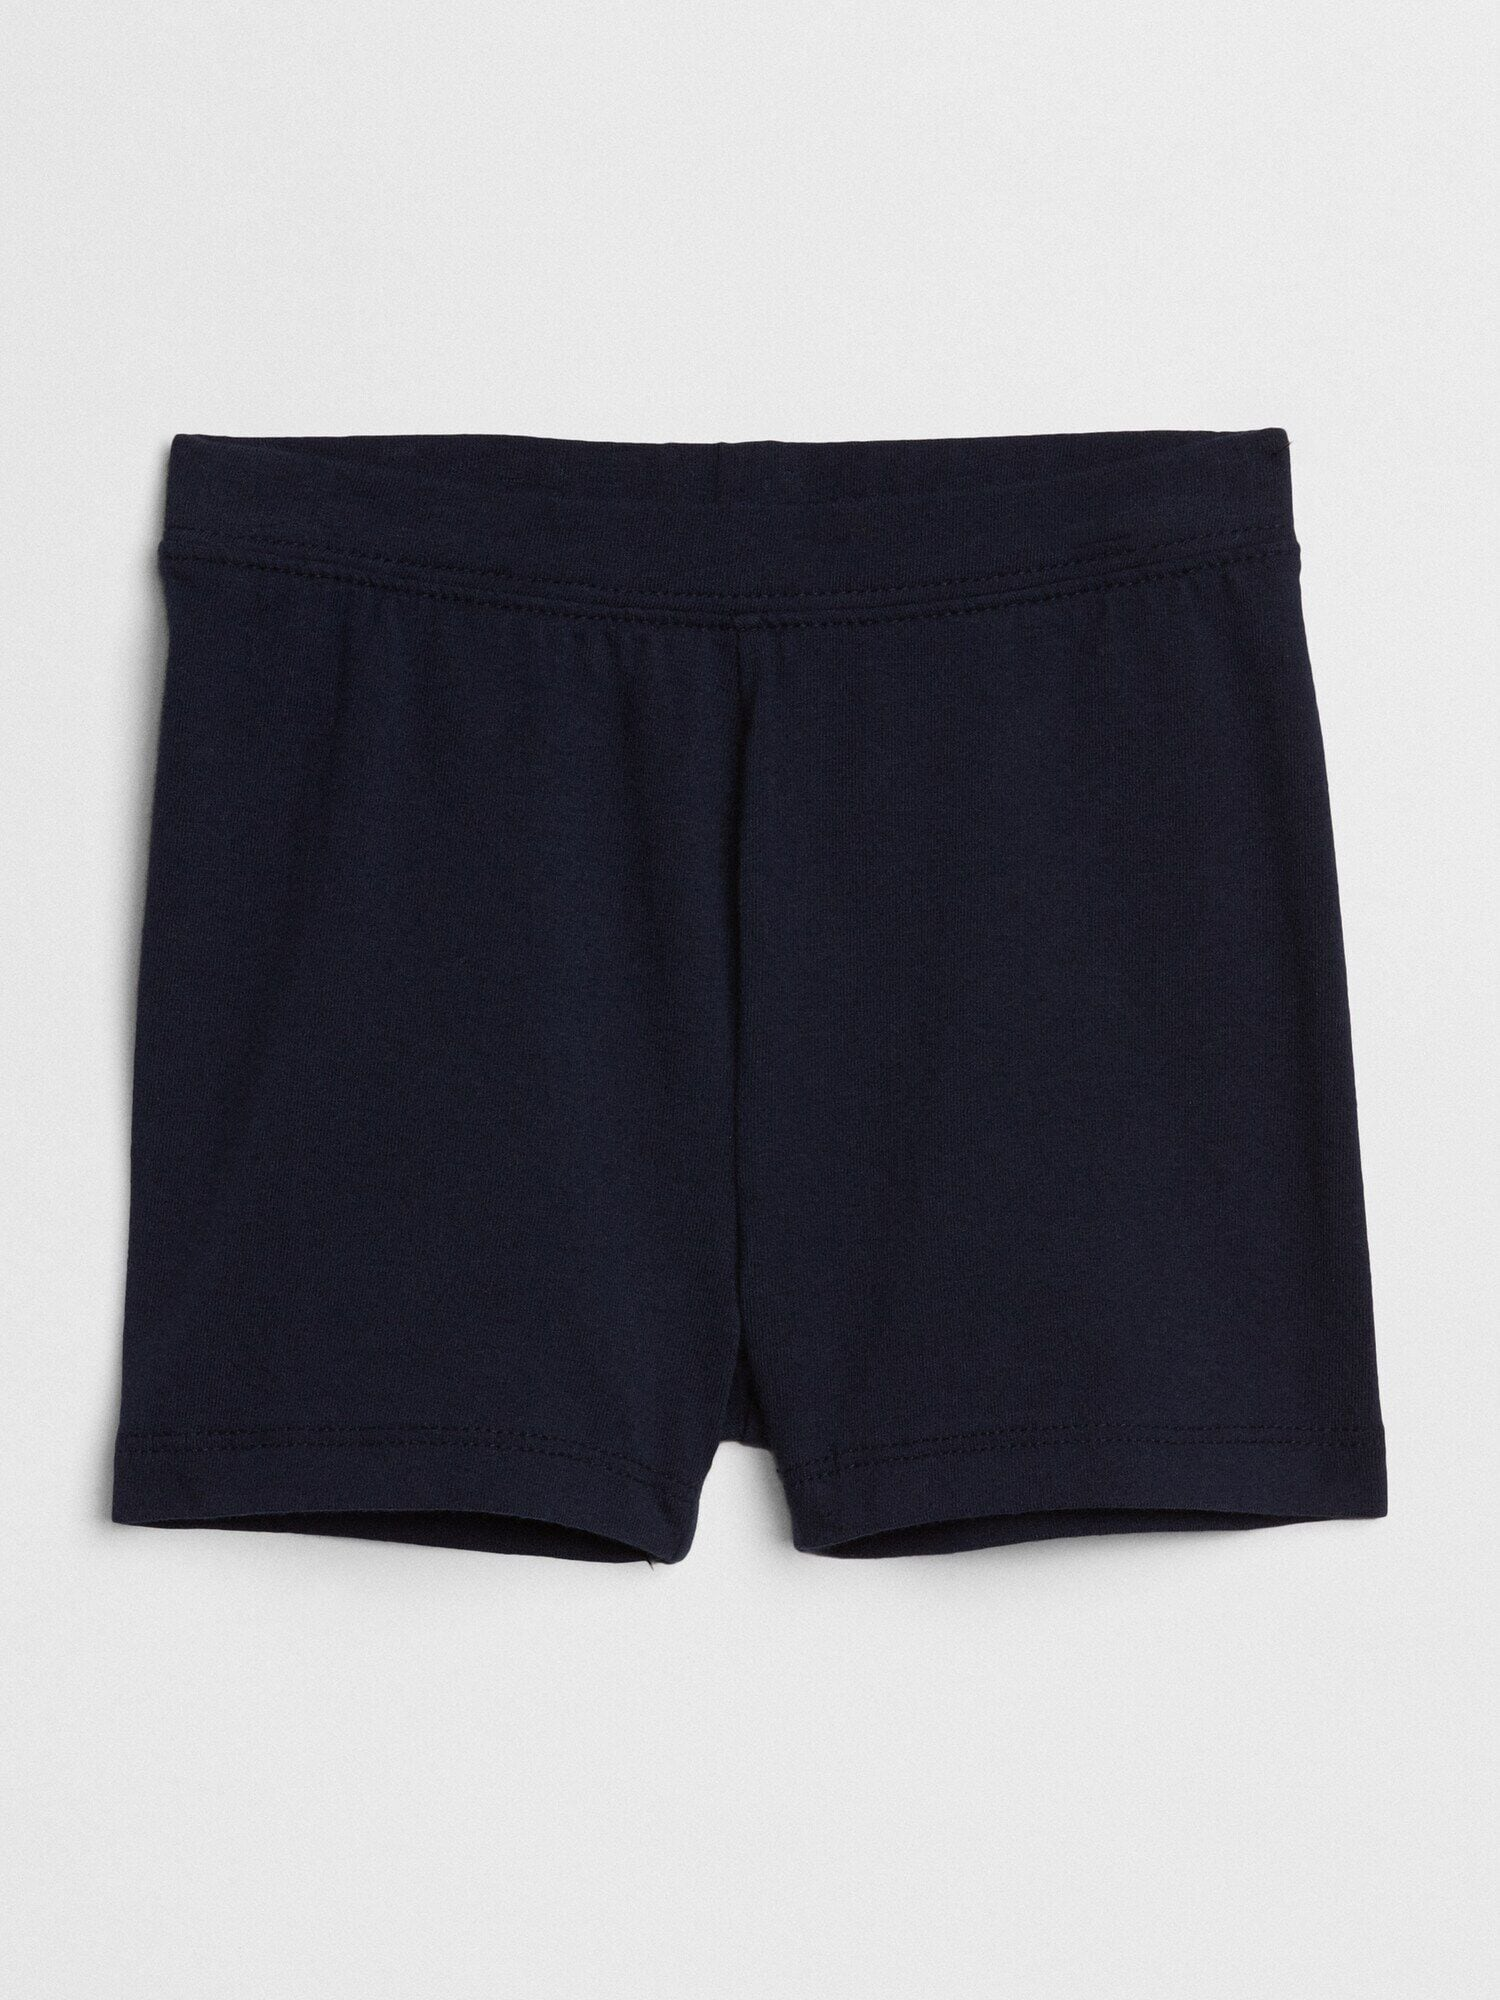 Product image is missing!